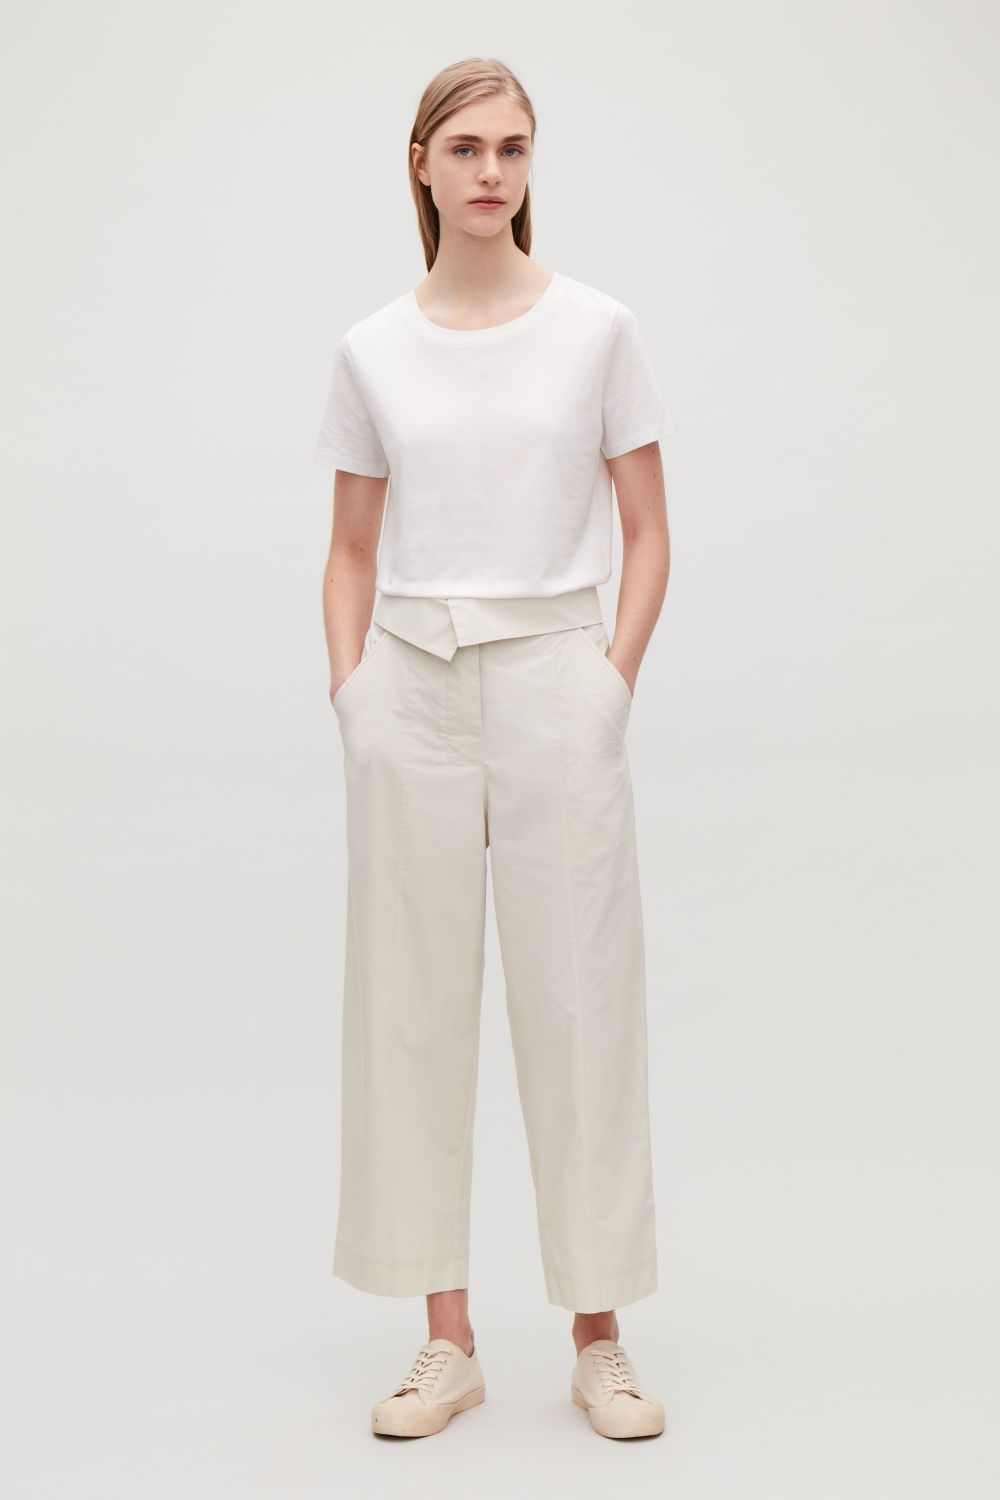 0768b99595 Trousers - Women - COS US | clothes | Cos trousers, Trousers ...